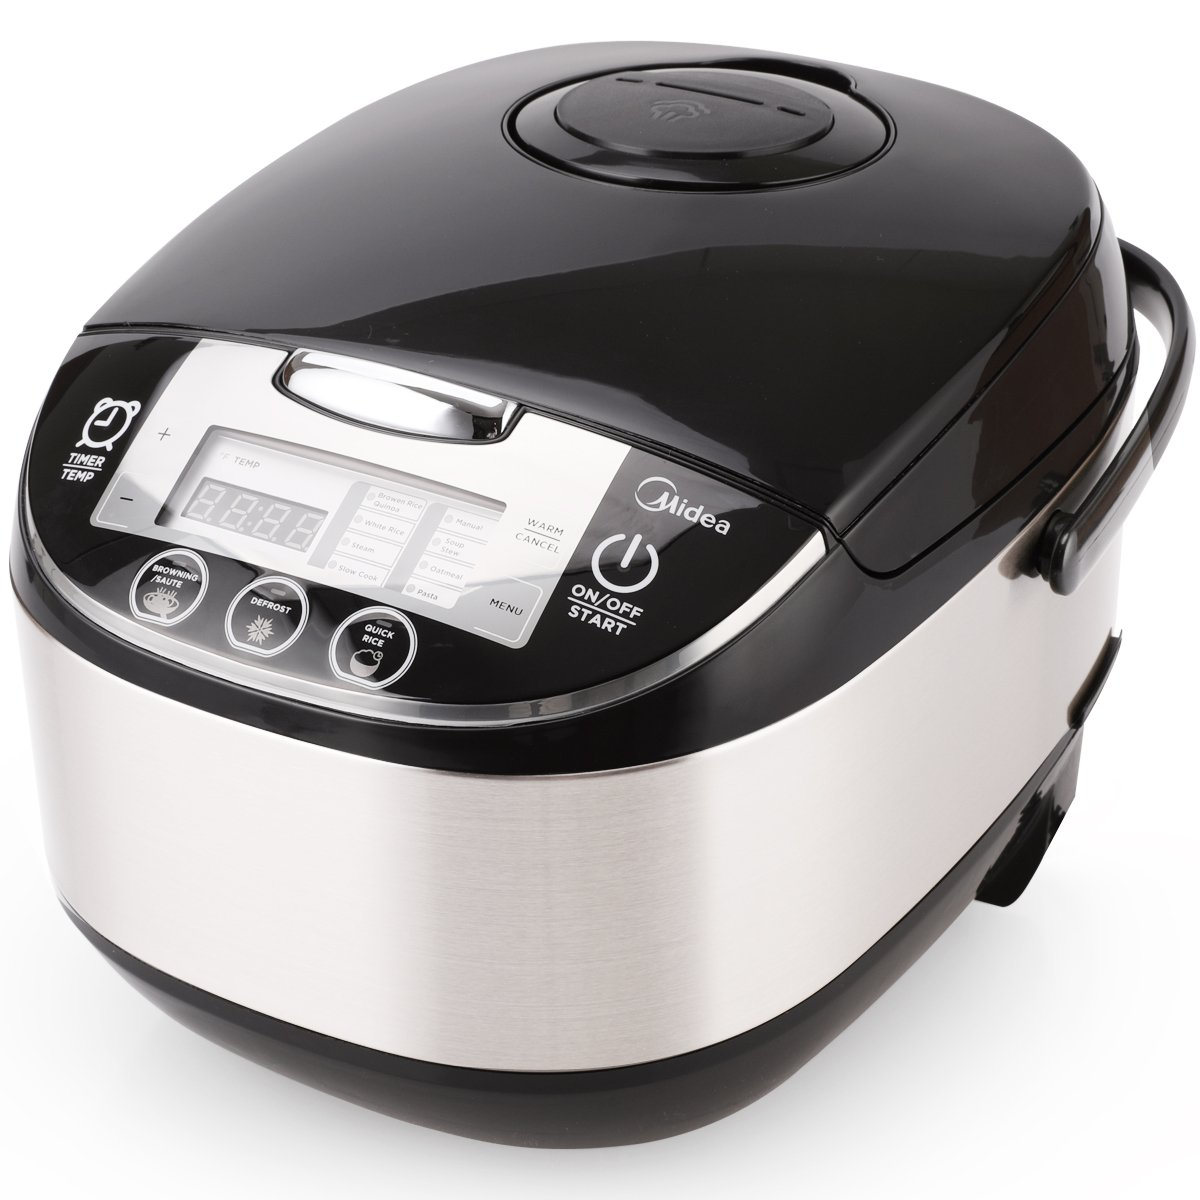 Midea Rice Cooker Slow Cooker Multi Cooker 10 Cup with Steamer Basket For Rice Food Vegetable Egg Automatic Keep Warm LED Digital Control